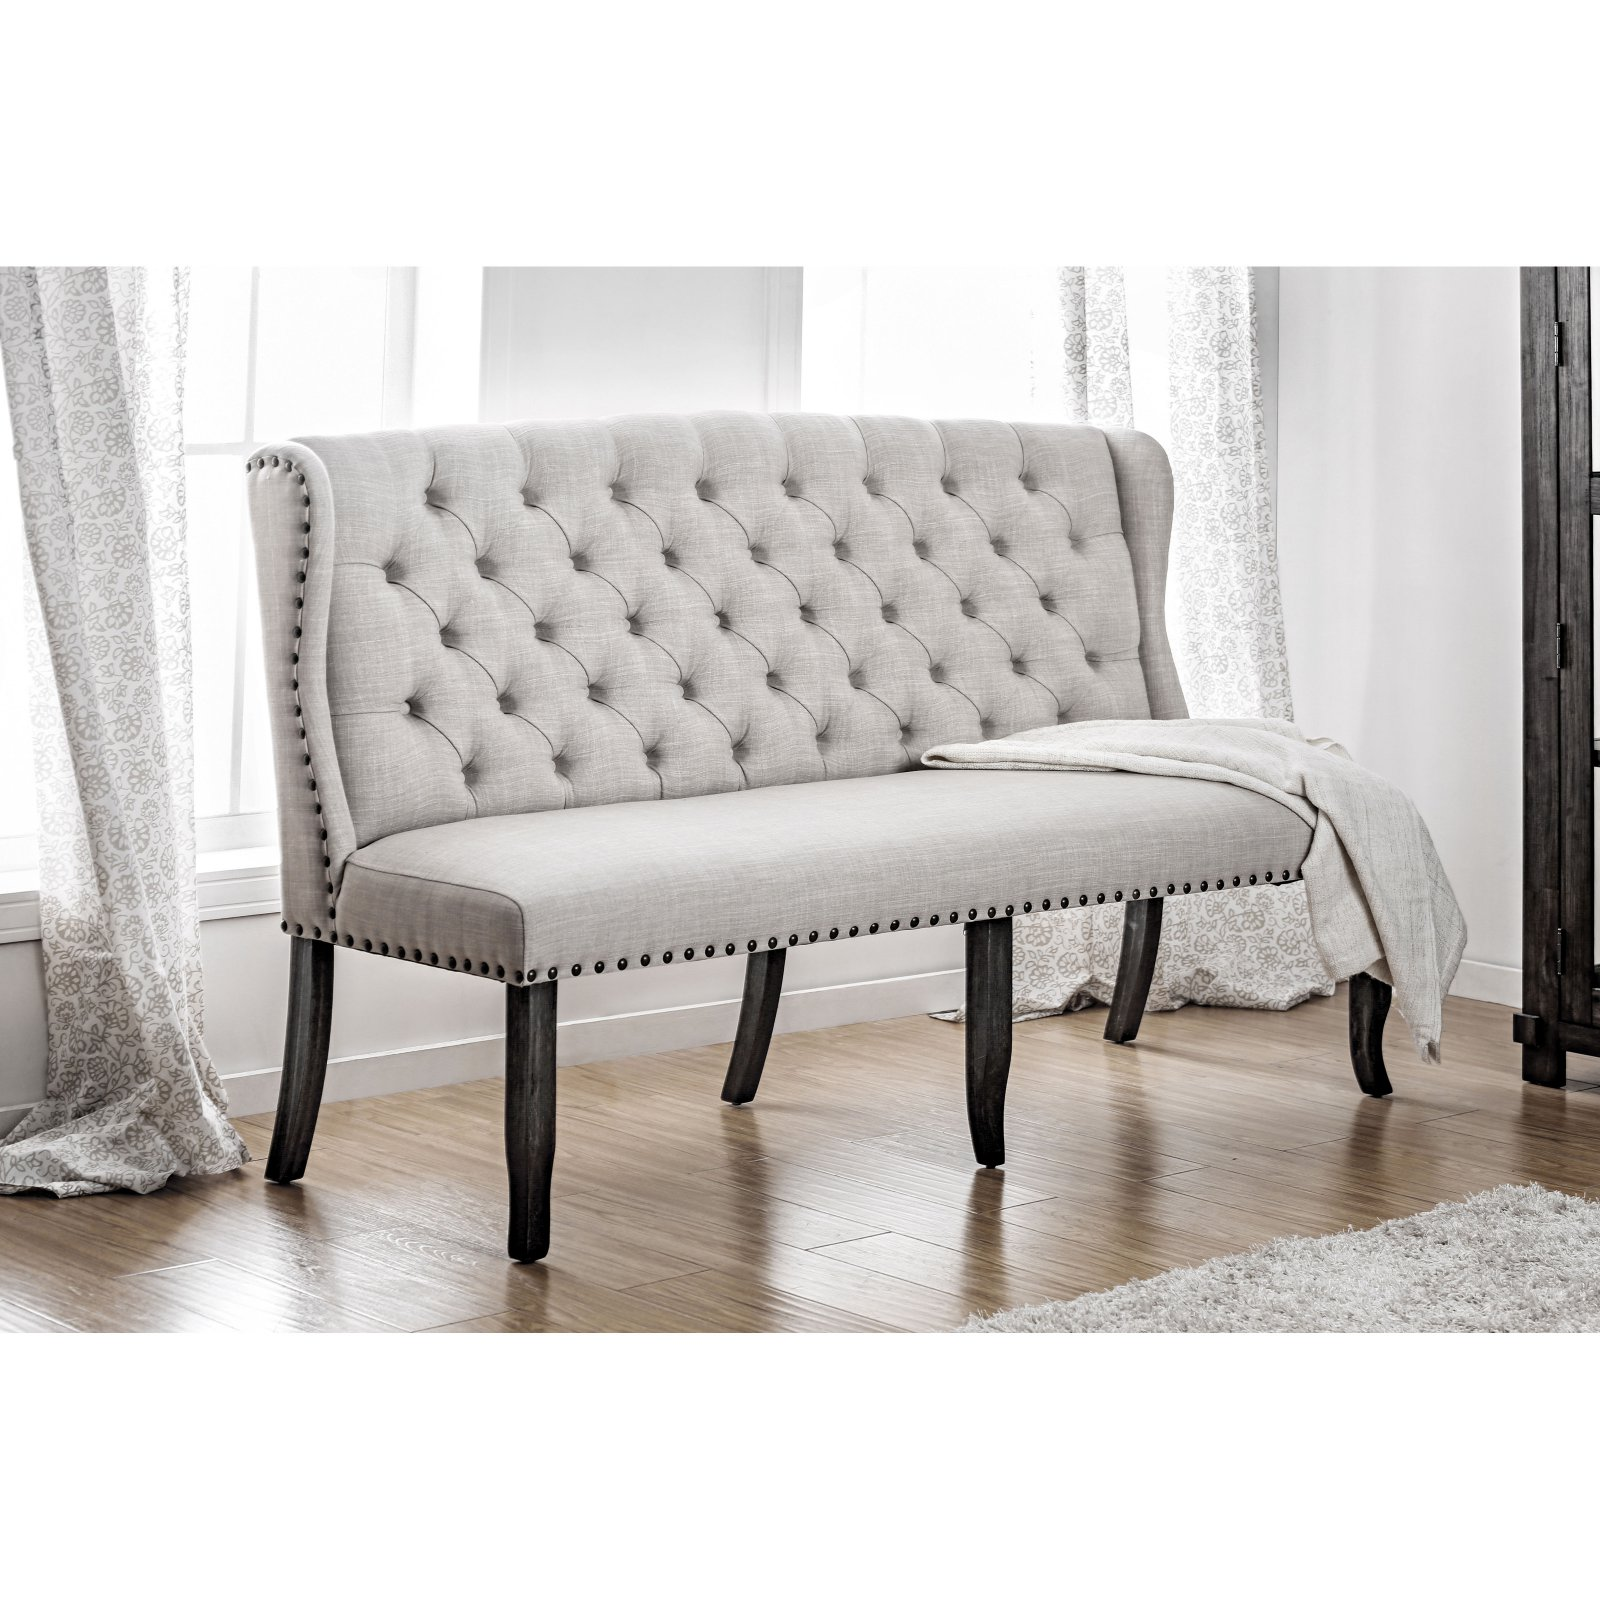 Furniture of America Oper Rustic 3-Seater Tufted Linen-like Fabric Loveseat  Dining Bench - Traveller Location